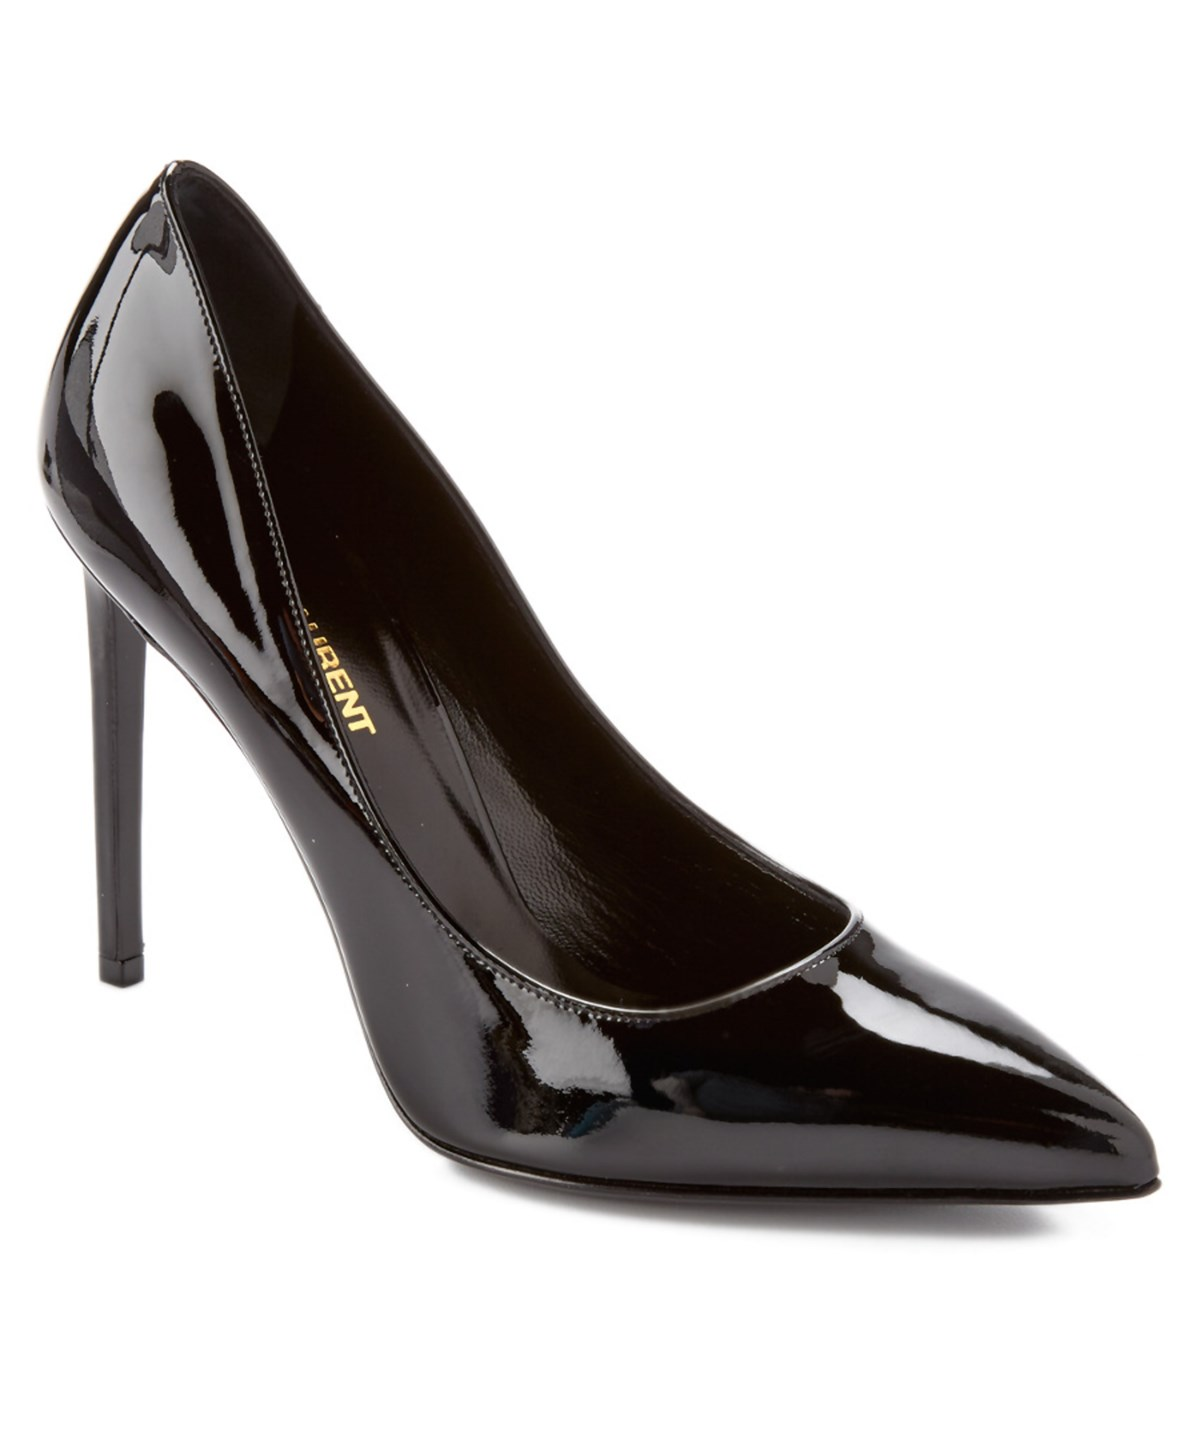 SAINT LAURENT Patent Leather 'Paris Skinny' Pumps